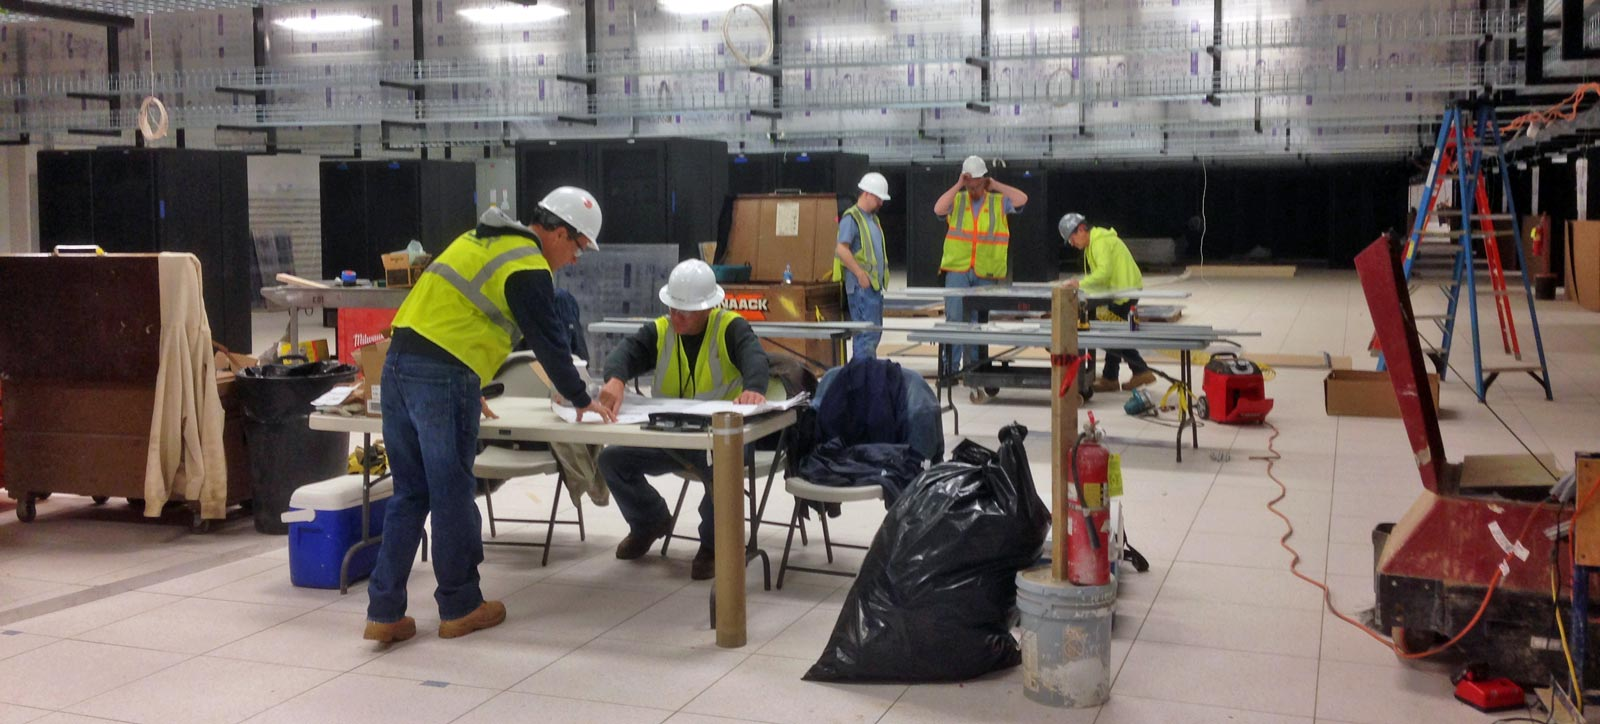 workers installing aisle containment system in data center